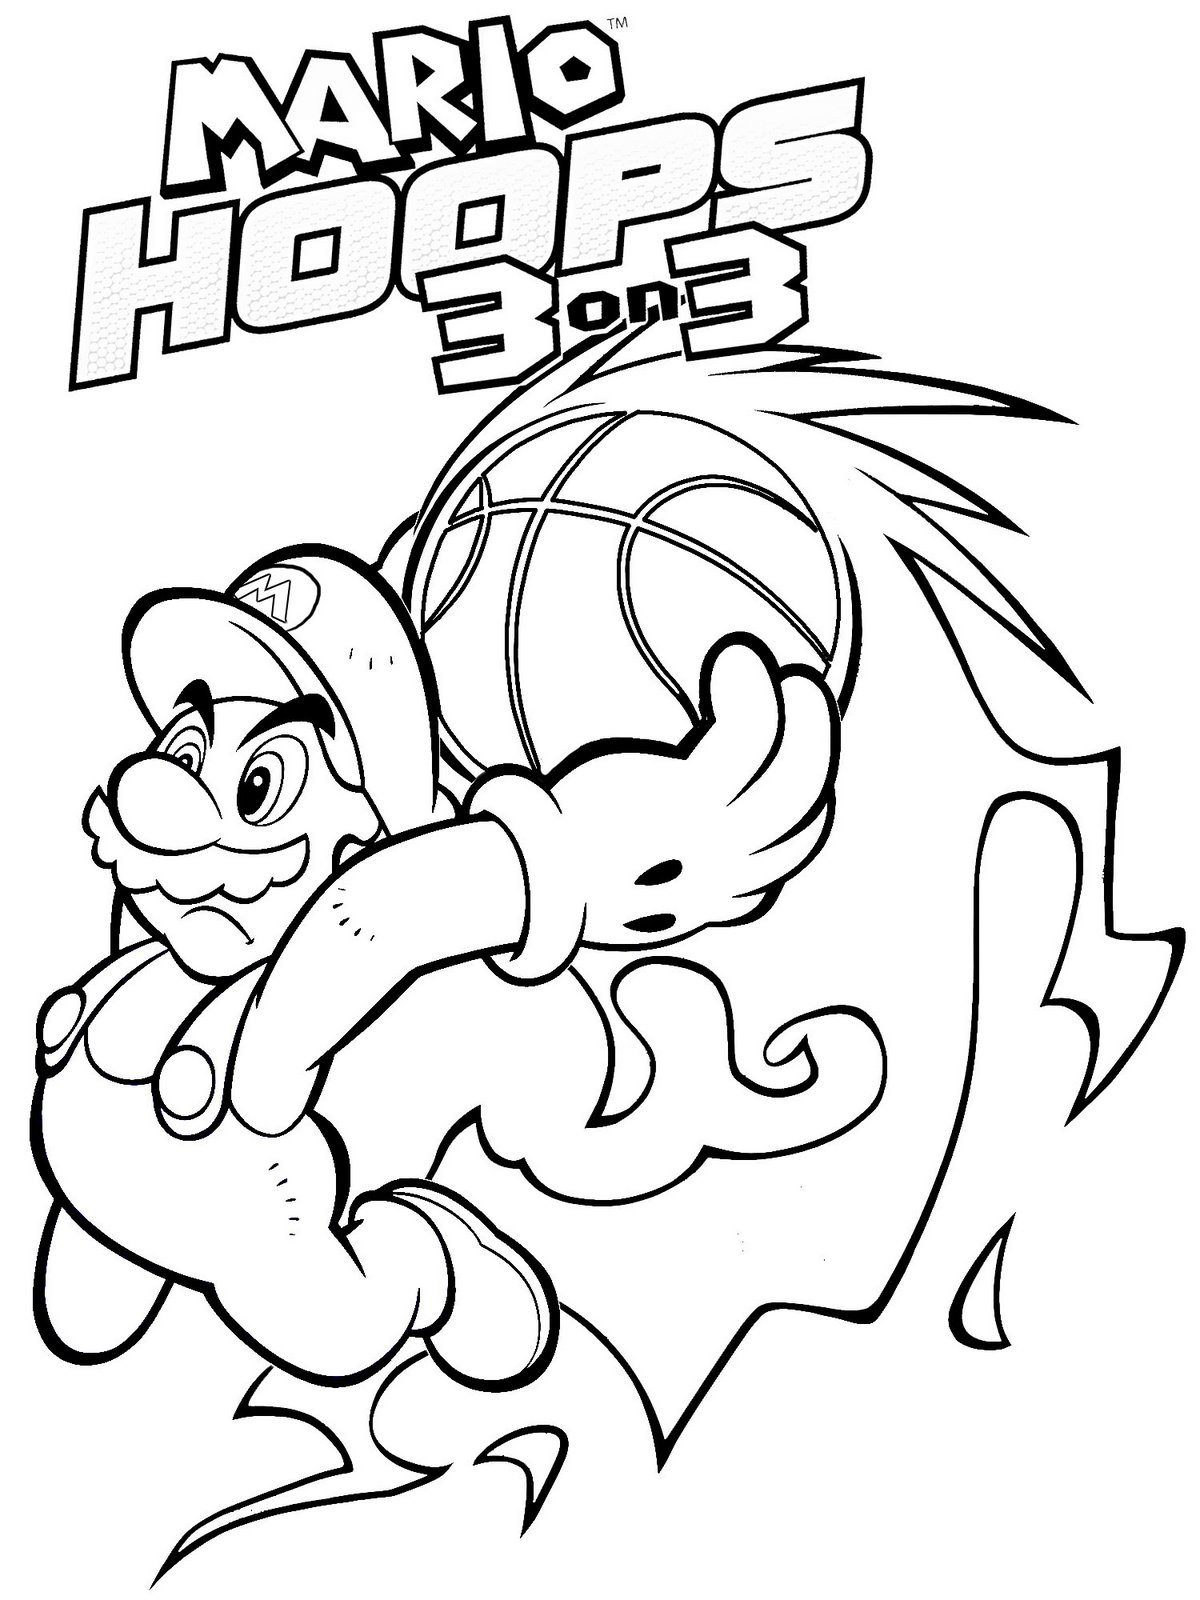 Mario bros coloring pages - Printable Mario Coloring Pages